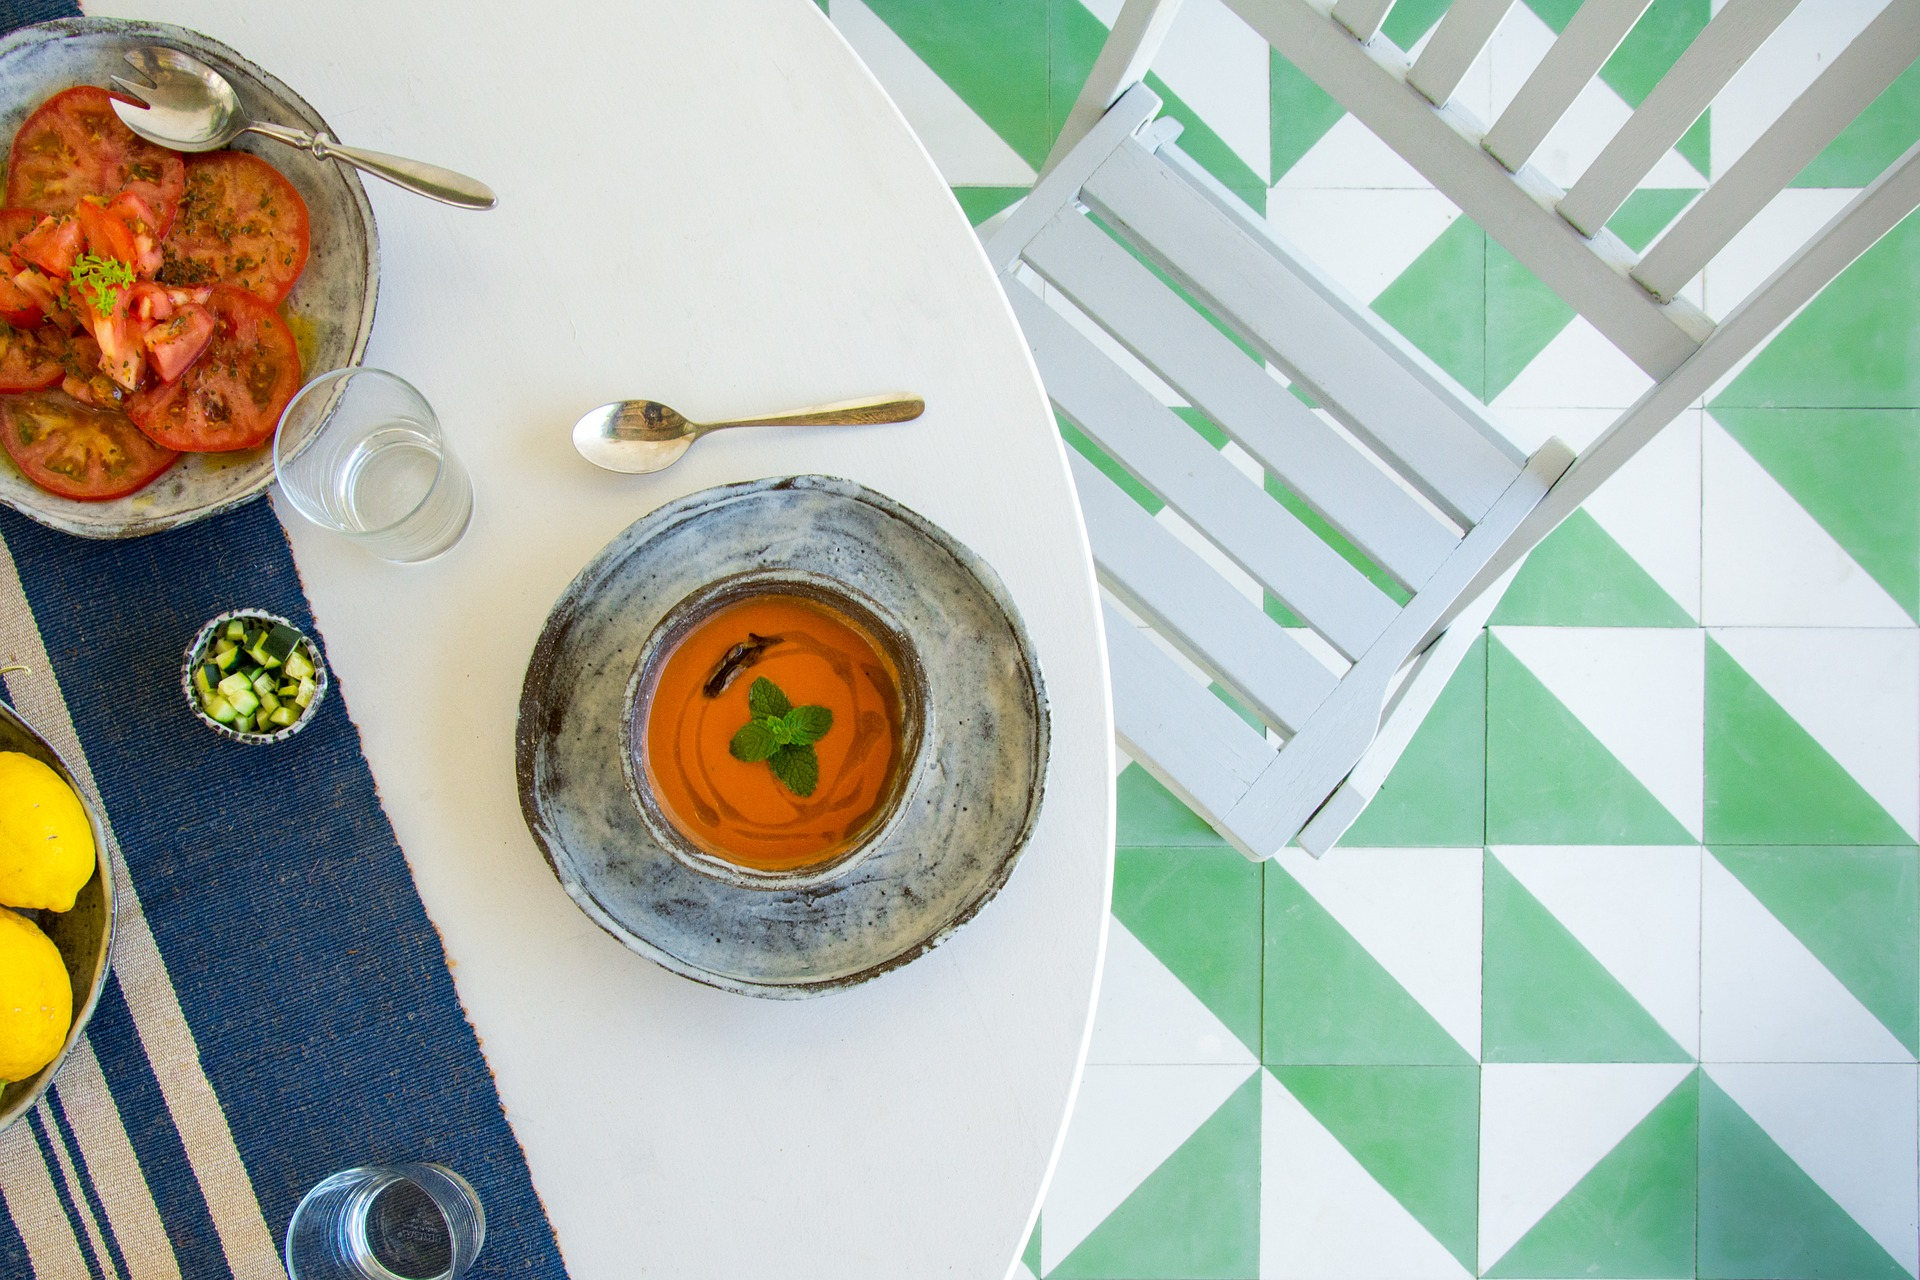 Gazpacho - A tasty, easy meal to add to your list.